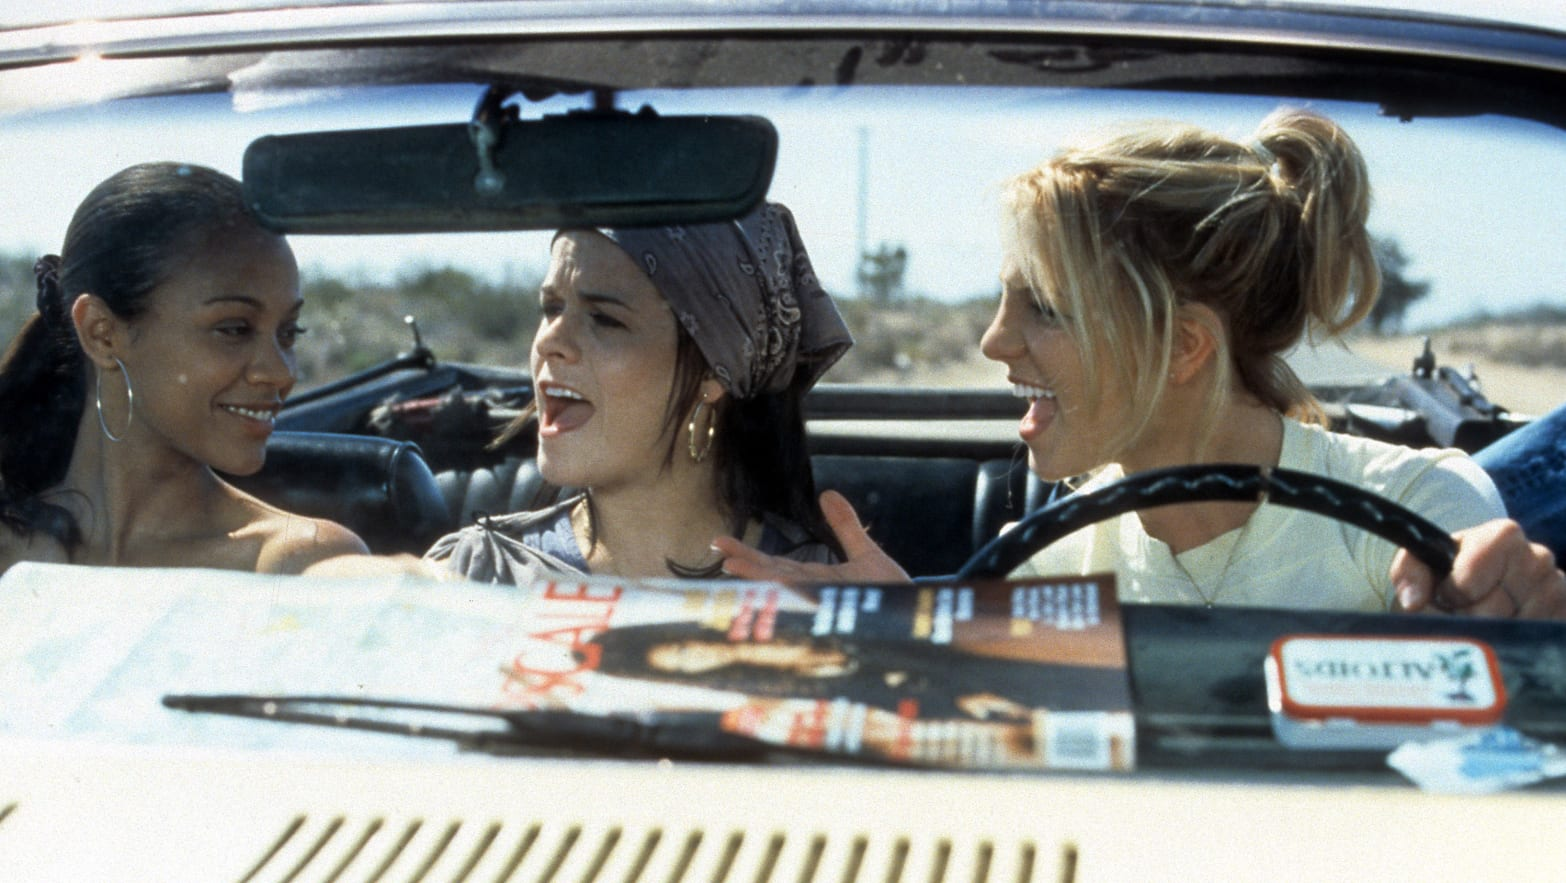 Zoe Saldana, Taryn Manning, and Britney Spears sing together in a car